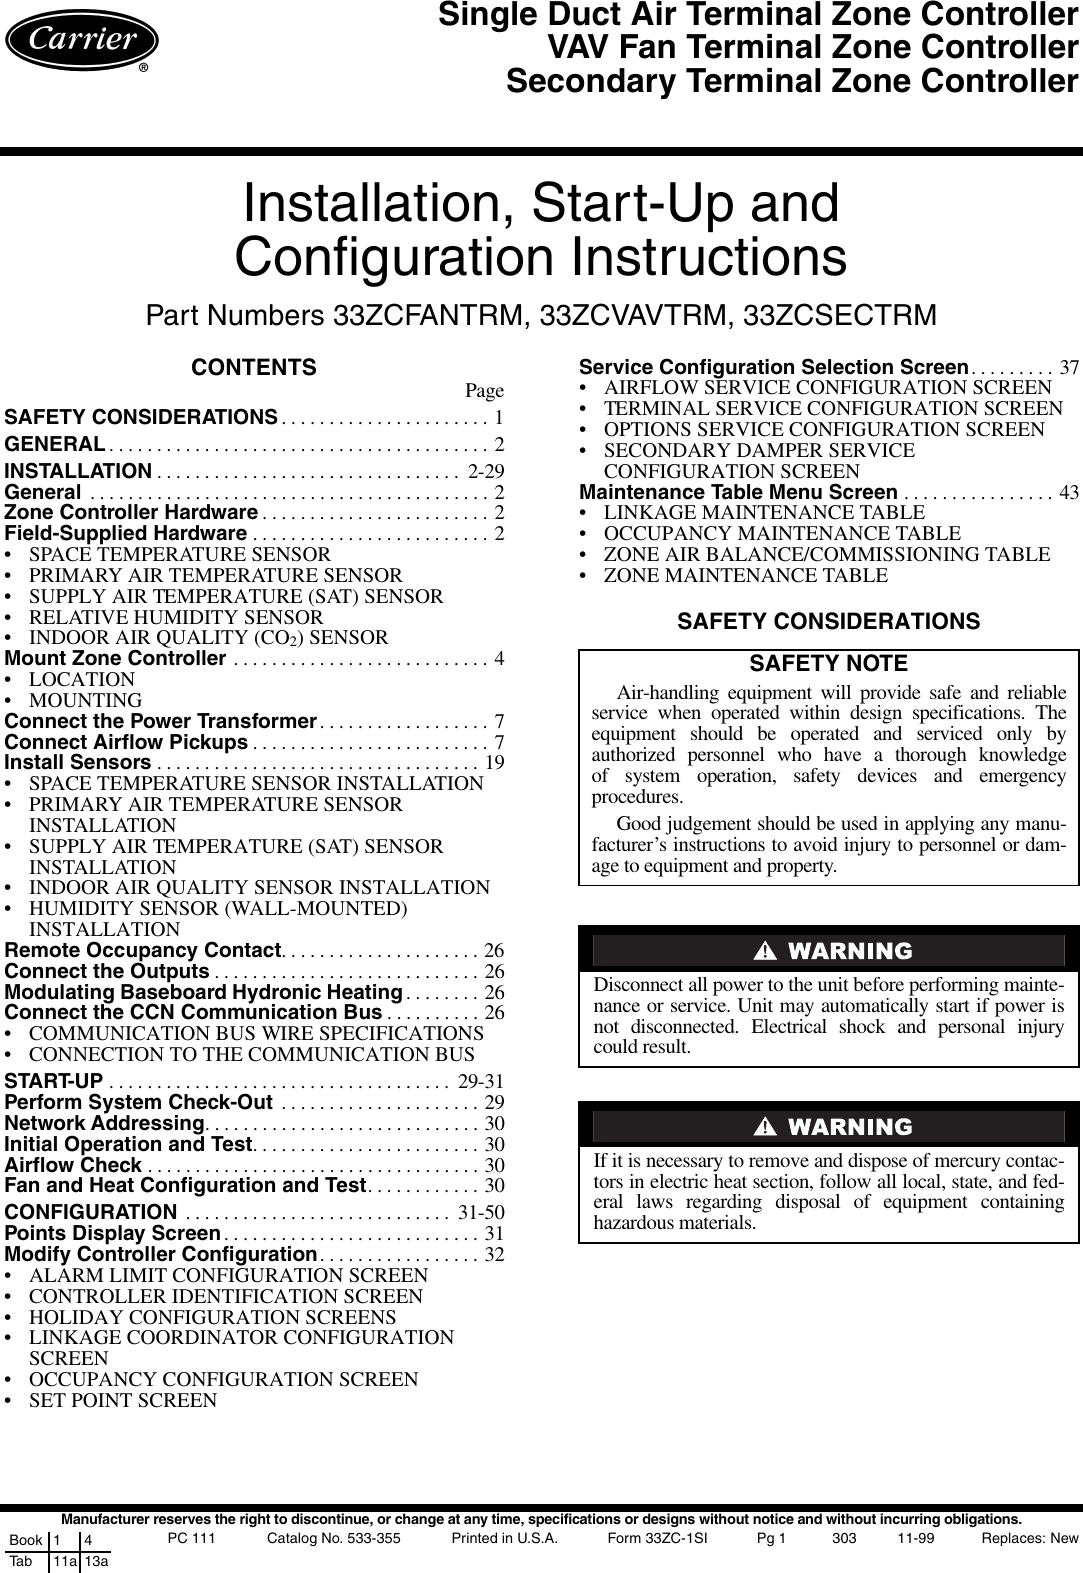 Carrier 33Zcfantrm Users Manual on nakamichi harness, radio harness, alpine stereo harness, suspension harness, fall protection harness, pony harness, obd0 to obd1 conversion harness, cable harness, electrical harness, dog harness, maxi-seal harness, safety harness, pet harness, oxygen sensor extension harness, amp bypass harness, engine harness, battery harness,